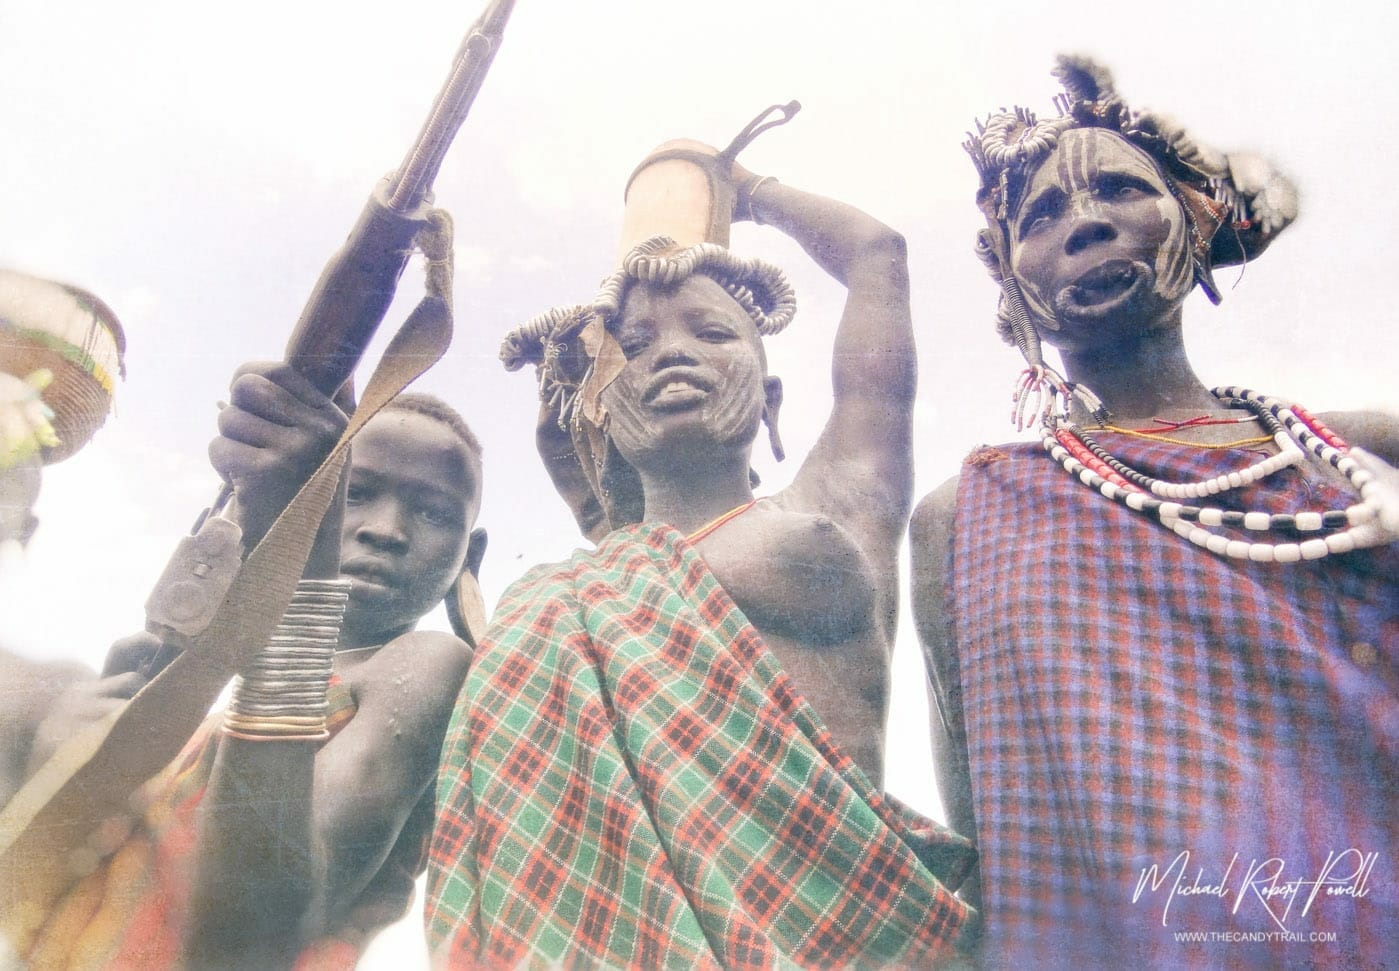 Mursi Tribe Traditions Modeling For Gun Money In Ethiopia